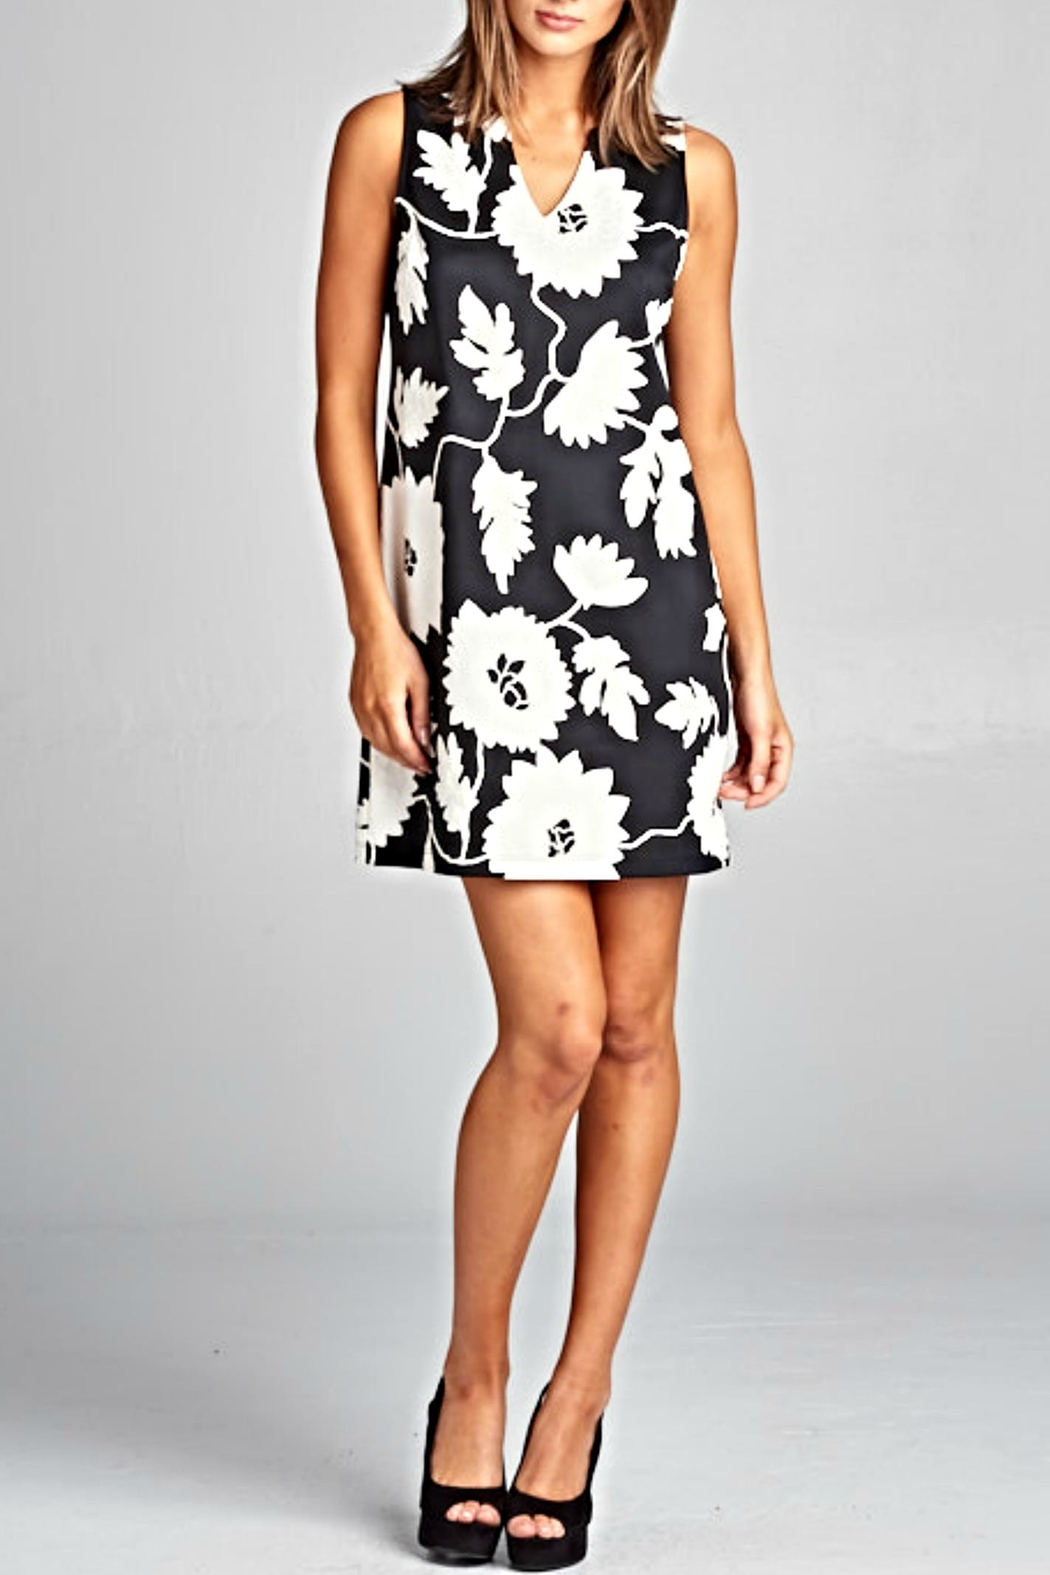 Renee C v-Neck Floral Dress - Main Image